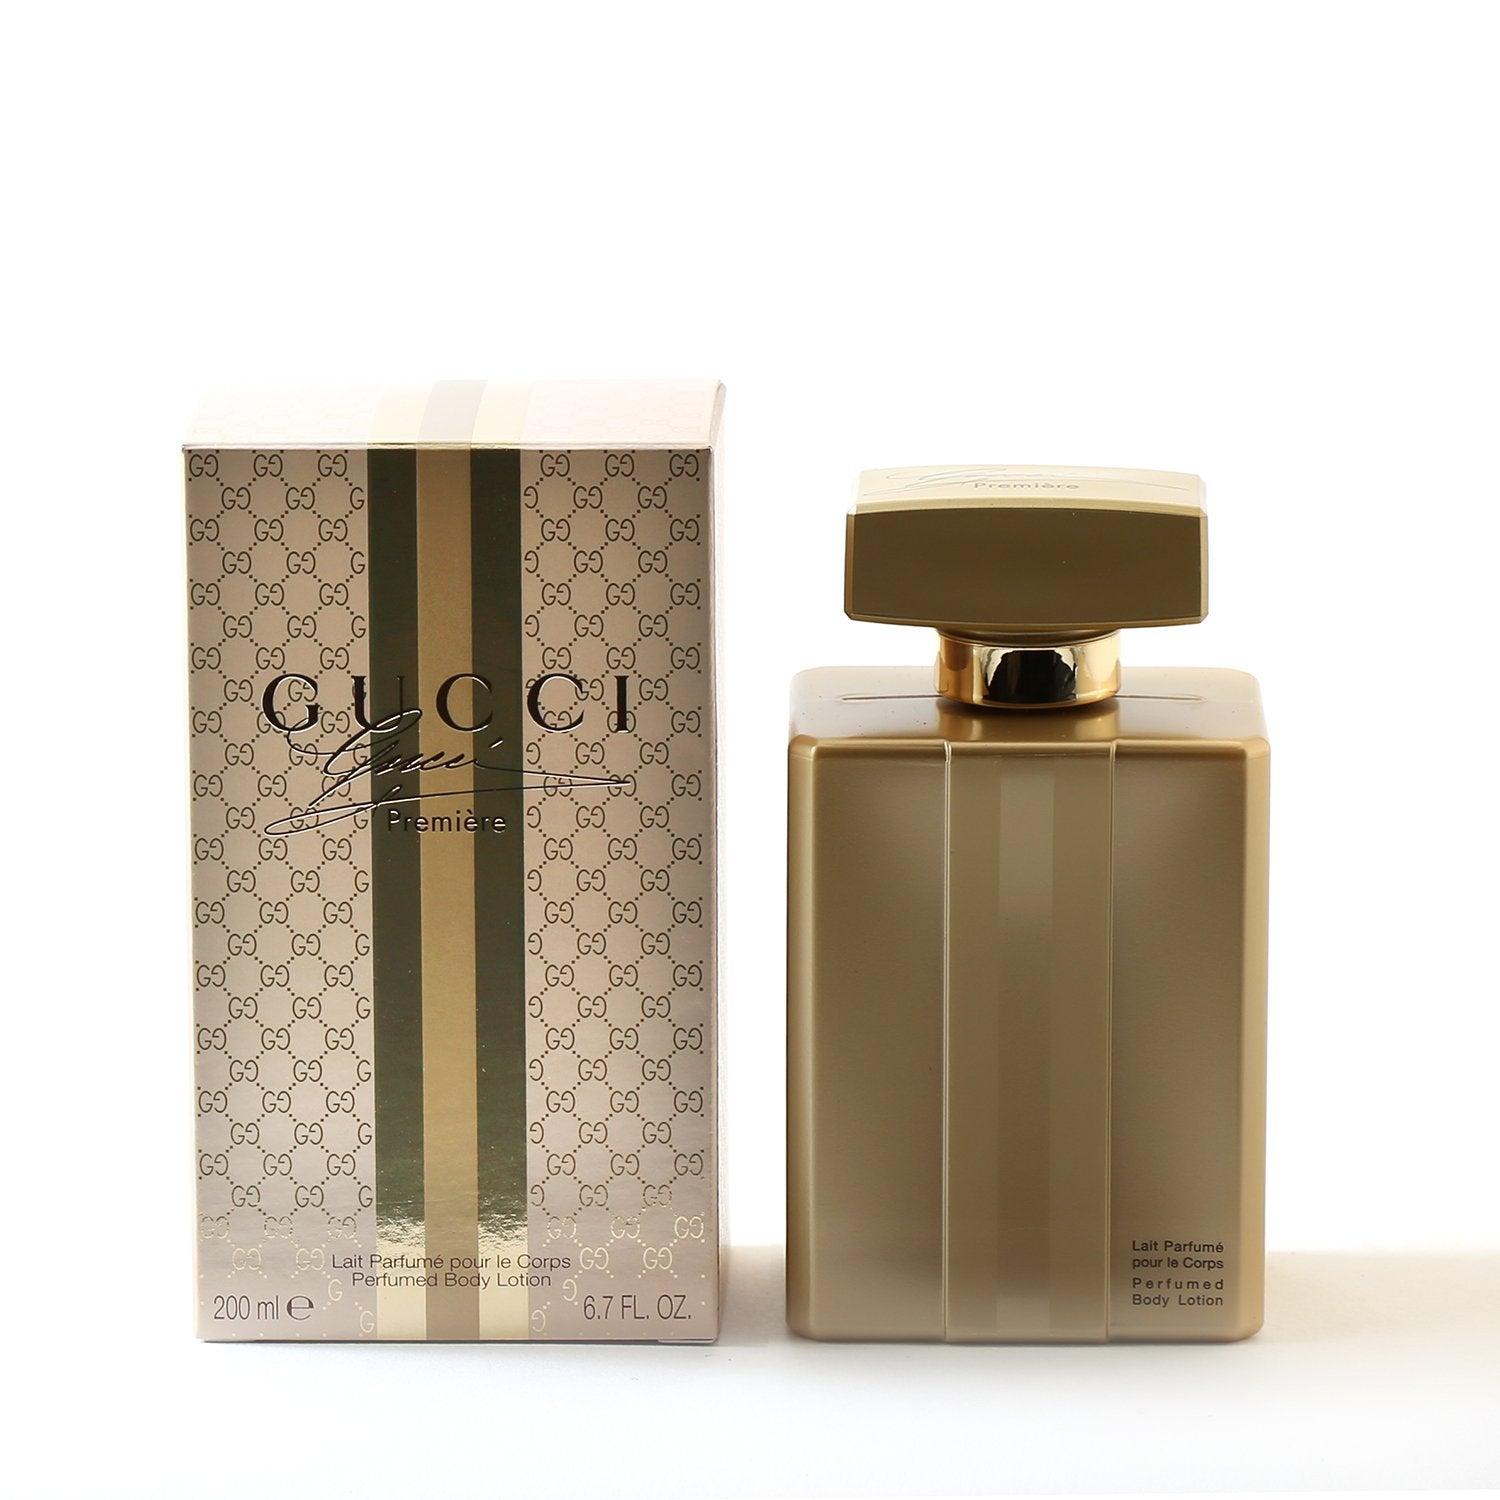 Perfume - GUCCI PREMIERE FOR WOMEN - BODY LOTION, 6.7 OZ